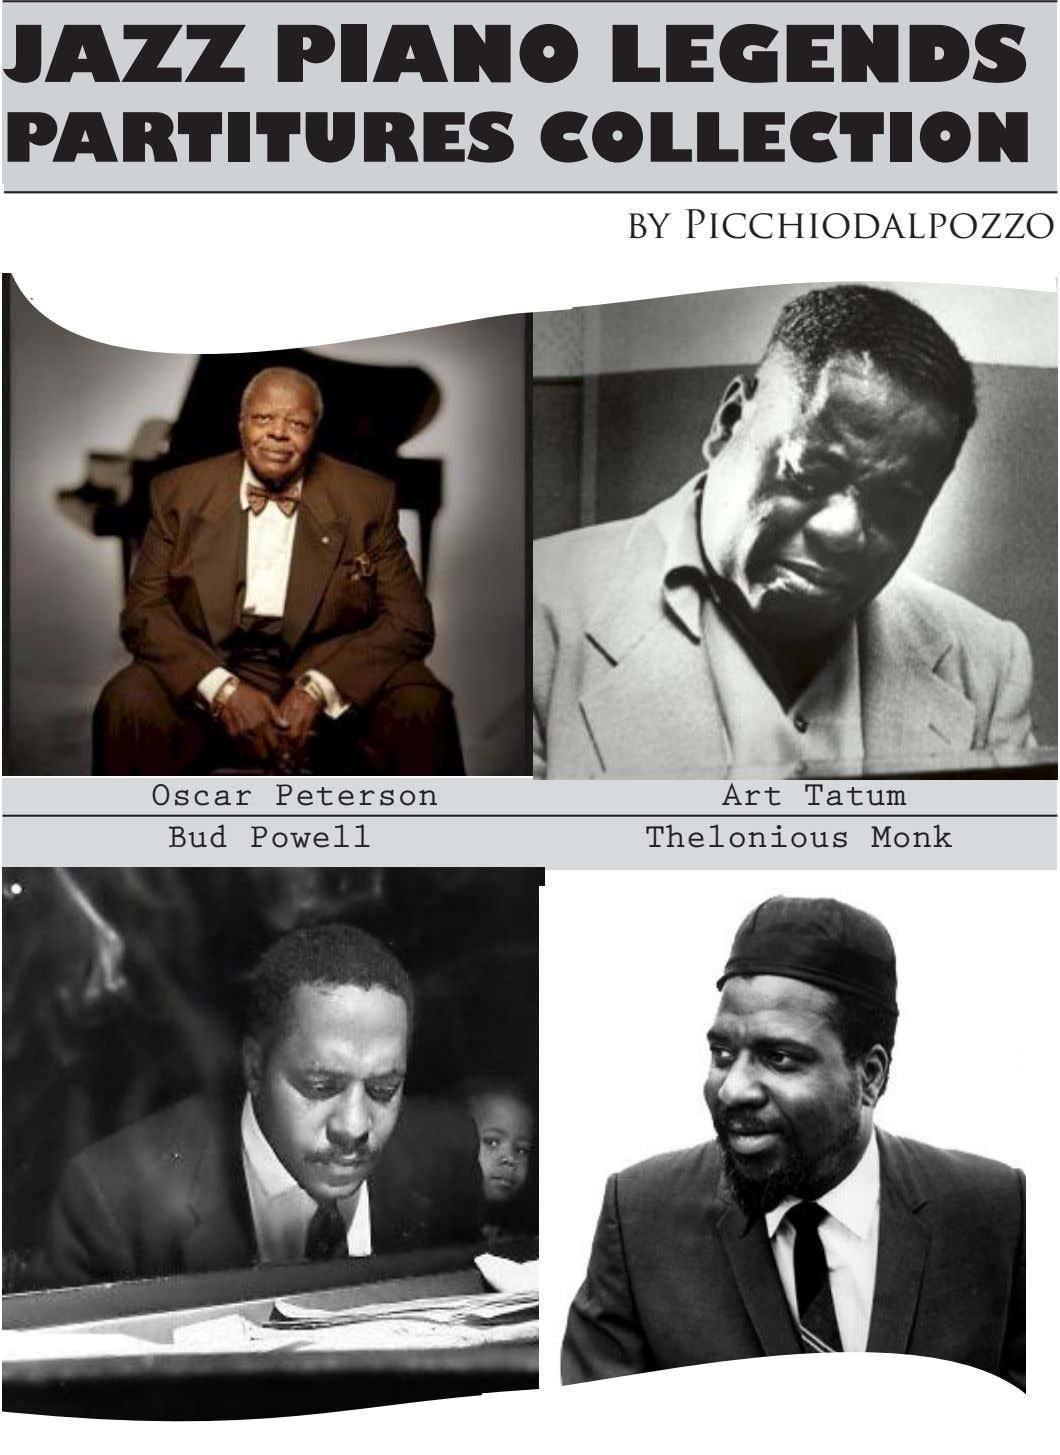 JAZZ PIANO LEGENDS PARTITURES COLLECTION by Picchiodalpozzo Oscar Peterson Art Tatum Bud Powell Thelonious Monk